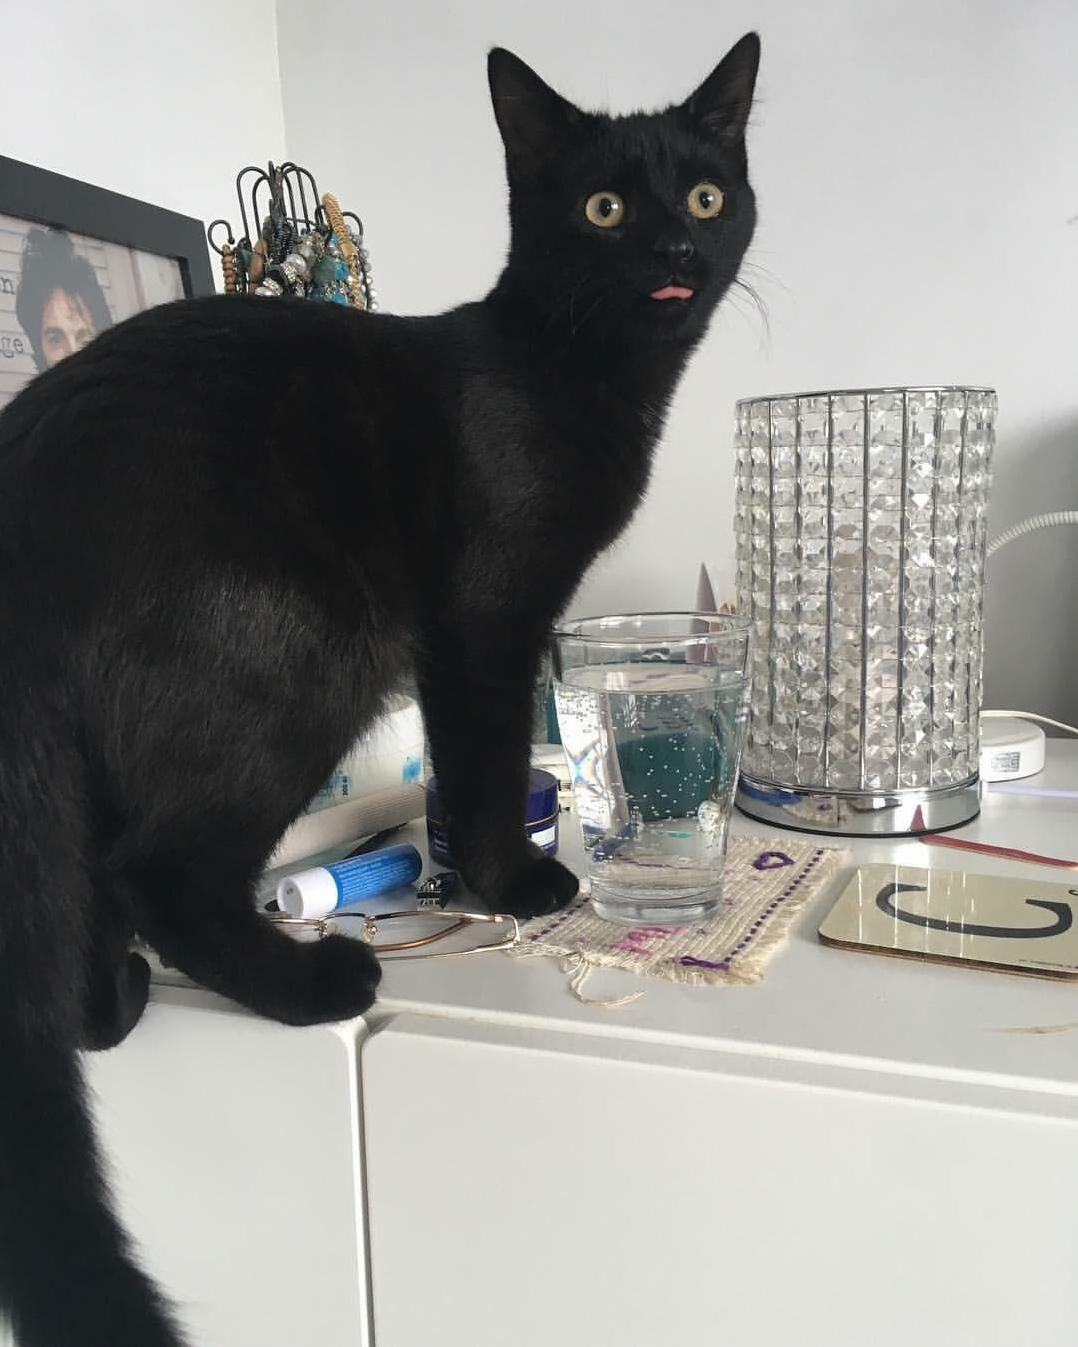 Mika got caught drinking from a water glass that he knew was not for him